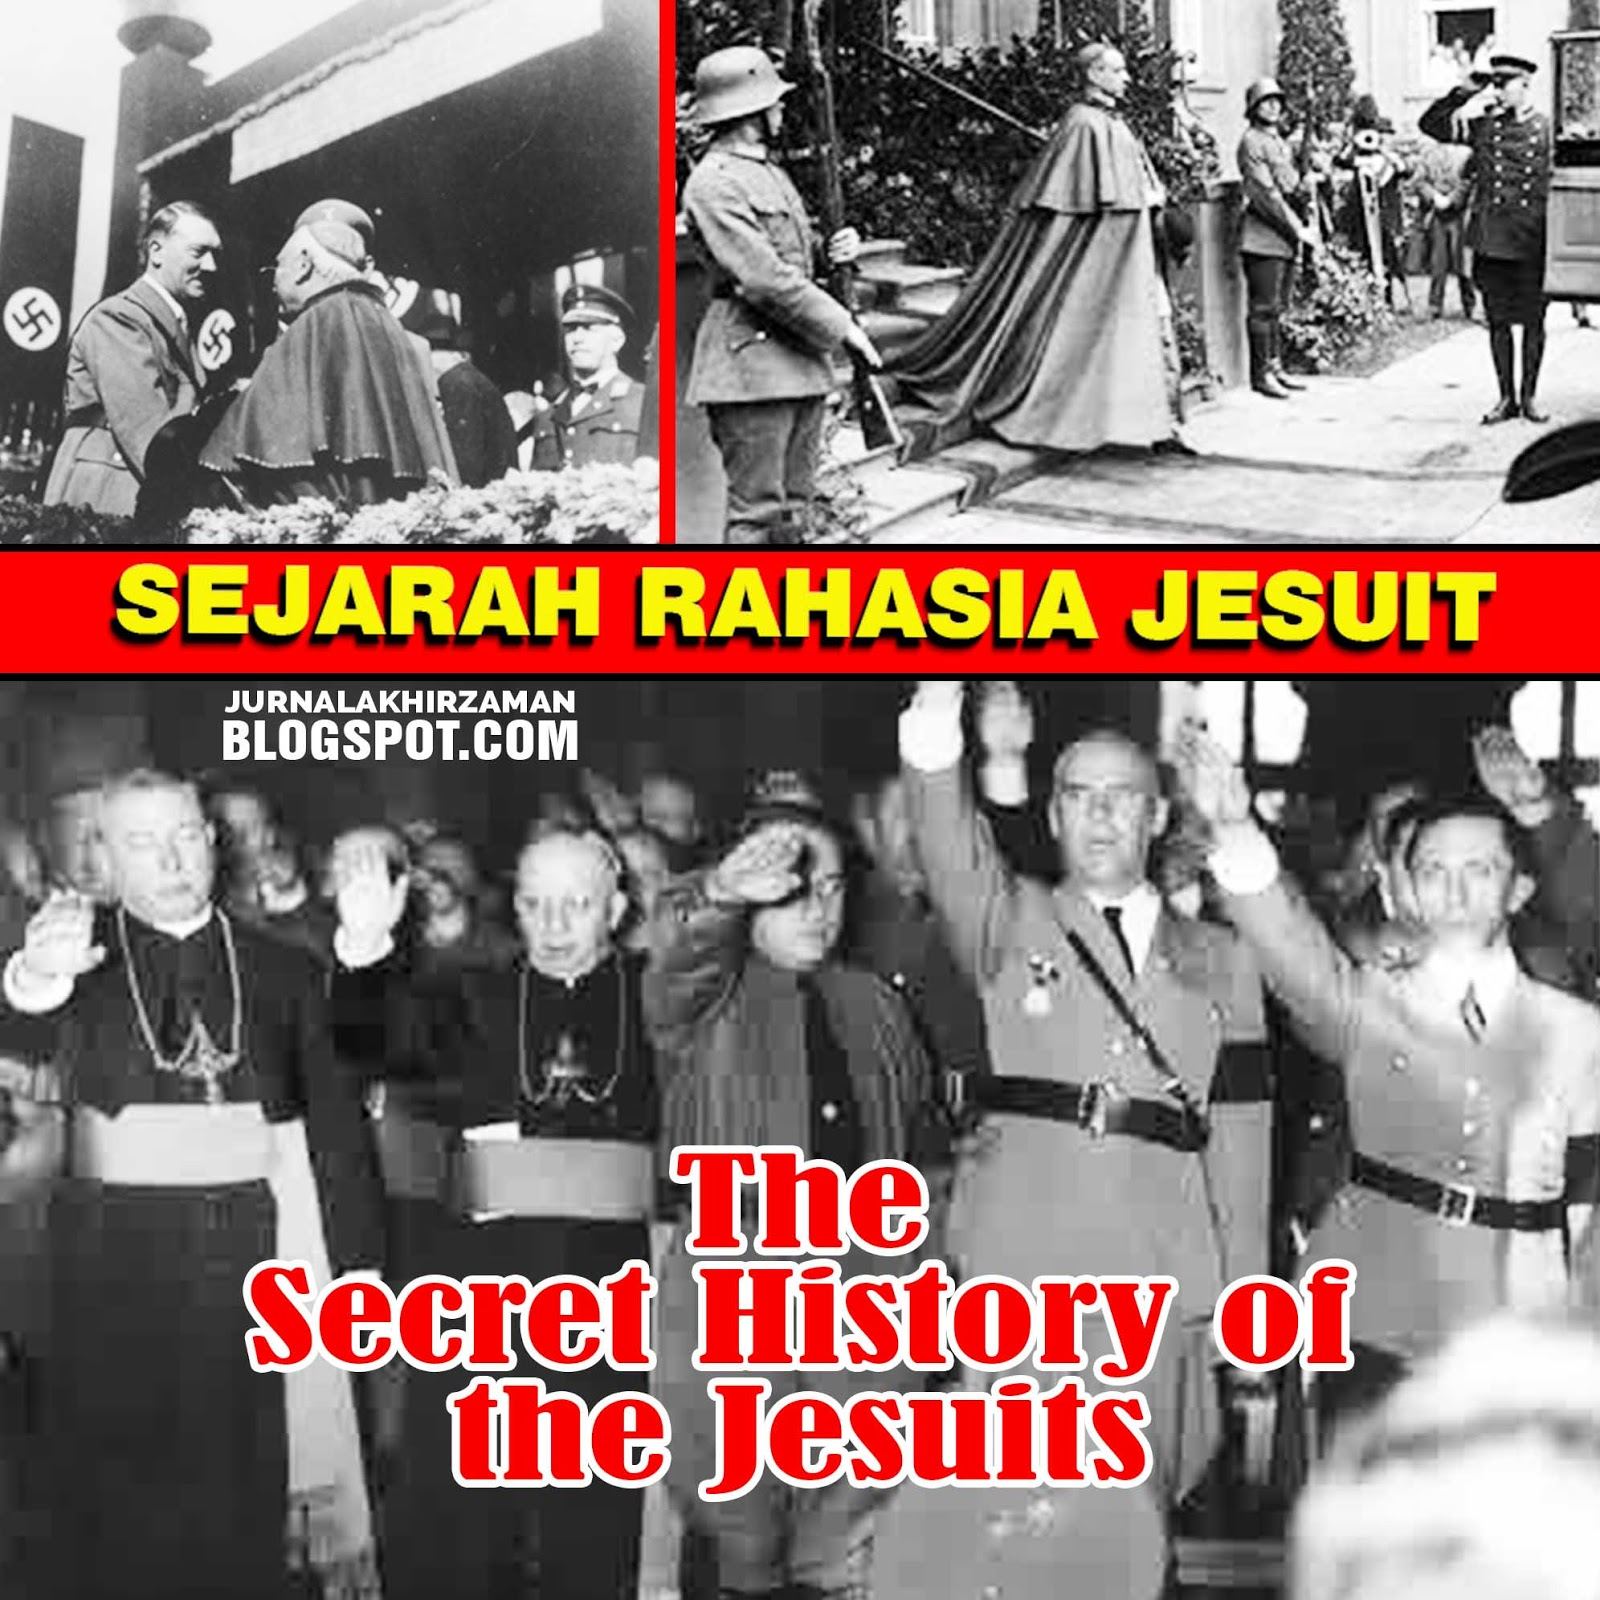 The Secret History Of Jesuits